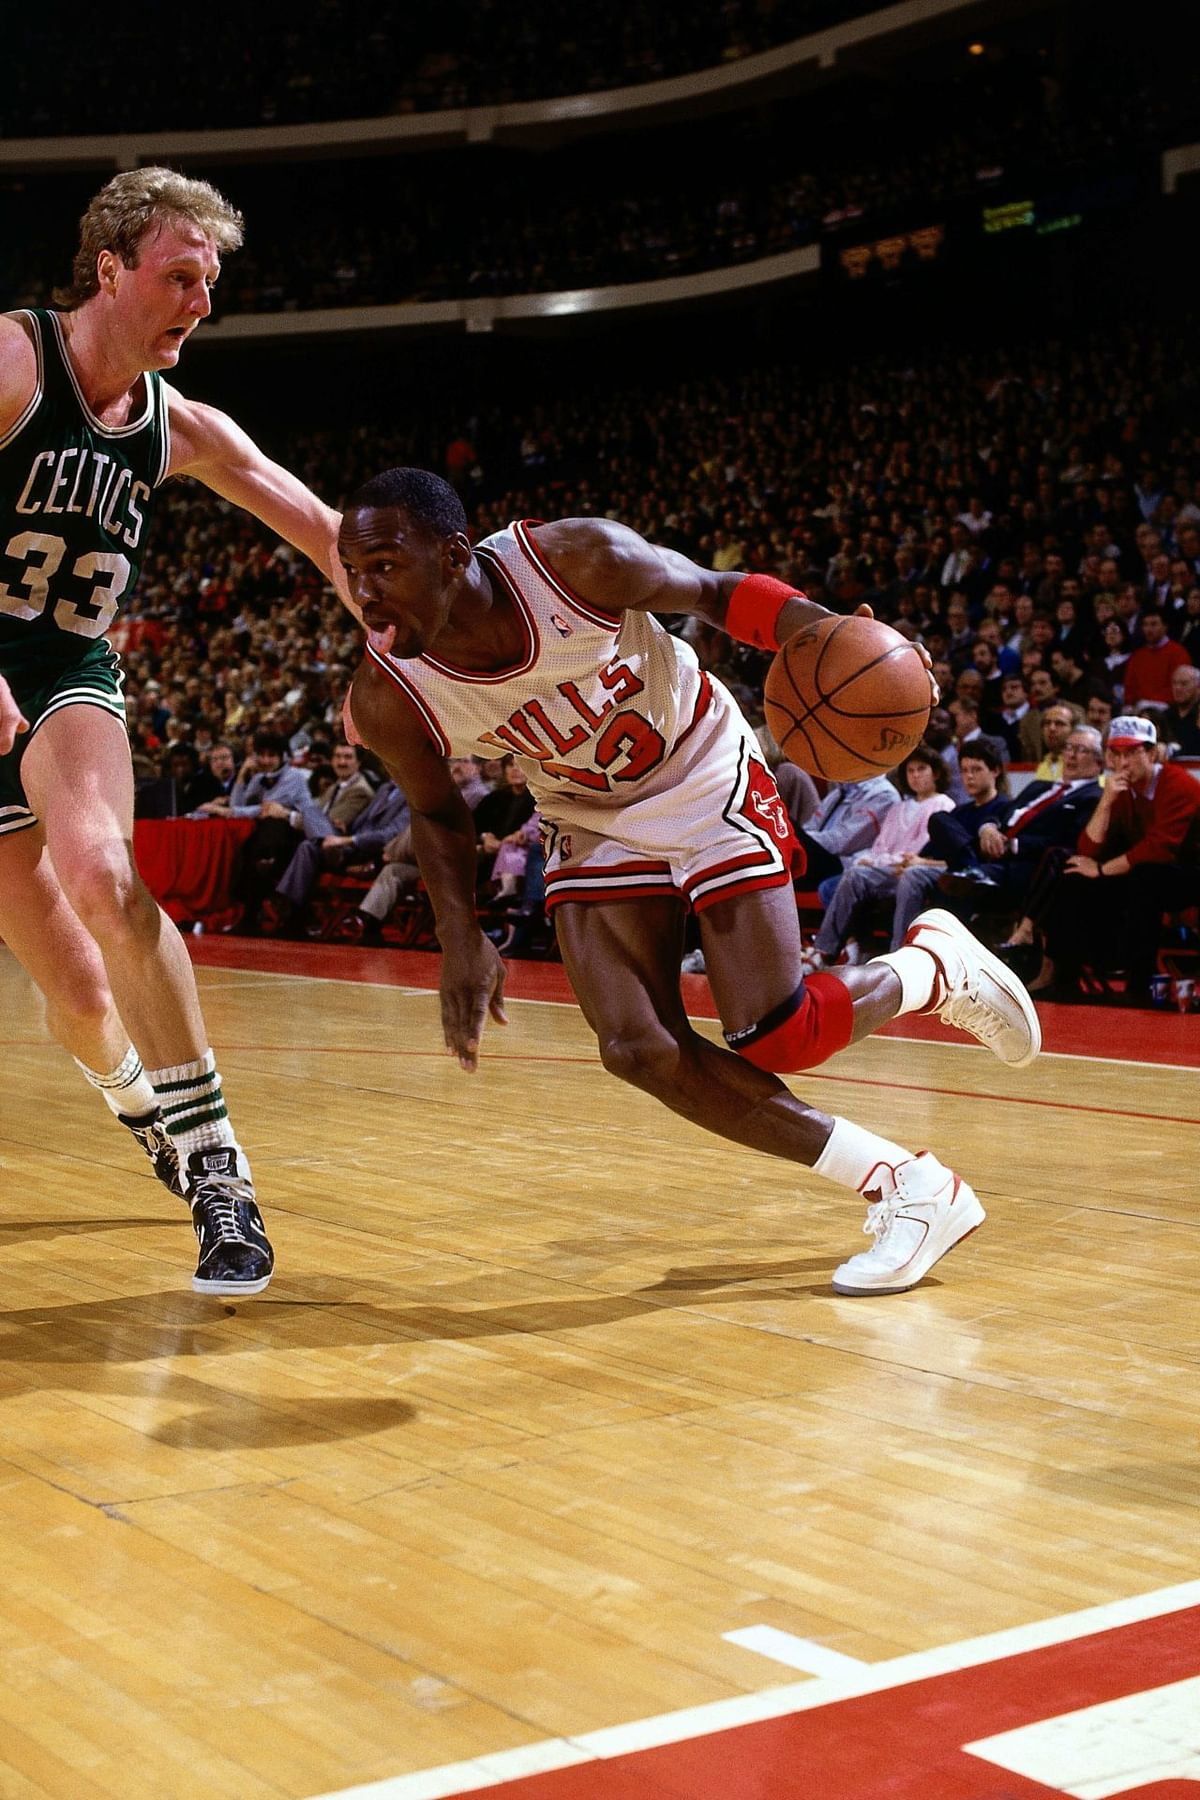 Micheal Jordan (right) takes on the great Larry Bird (Left)